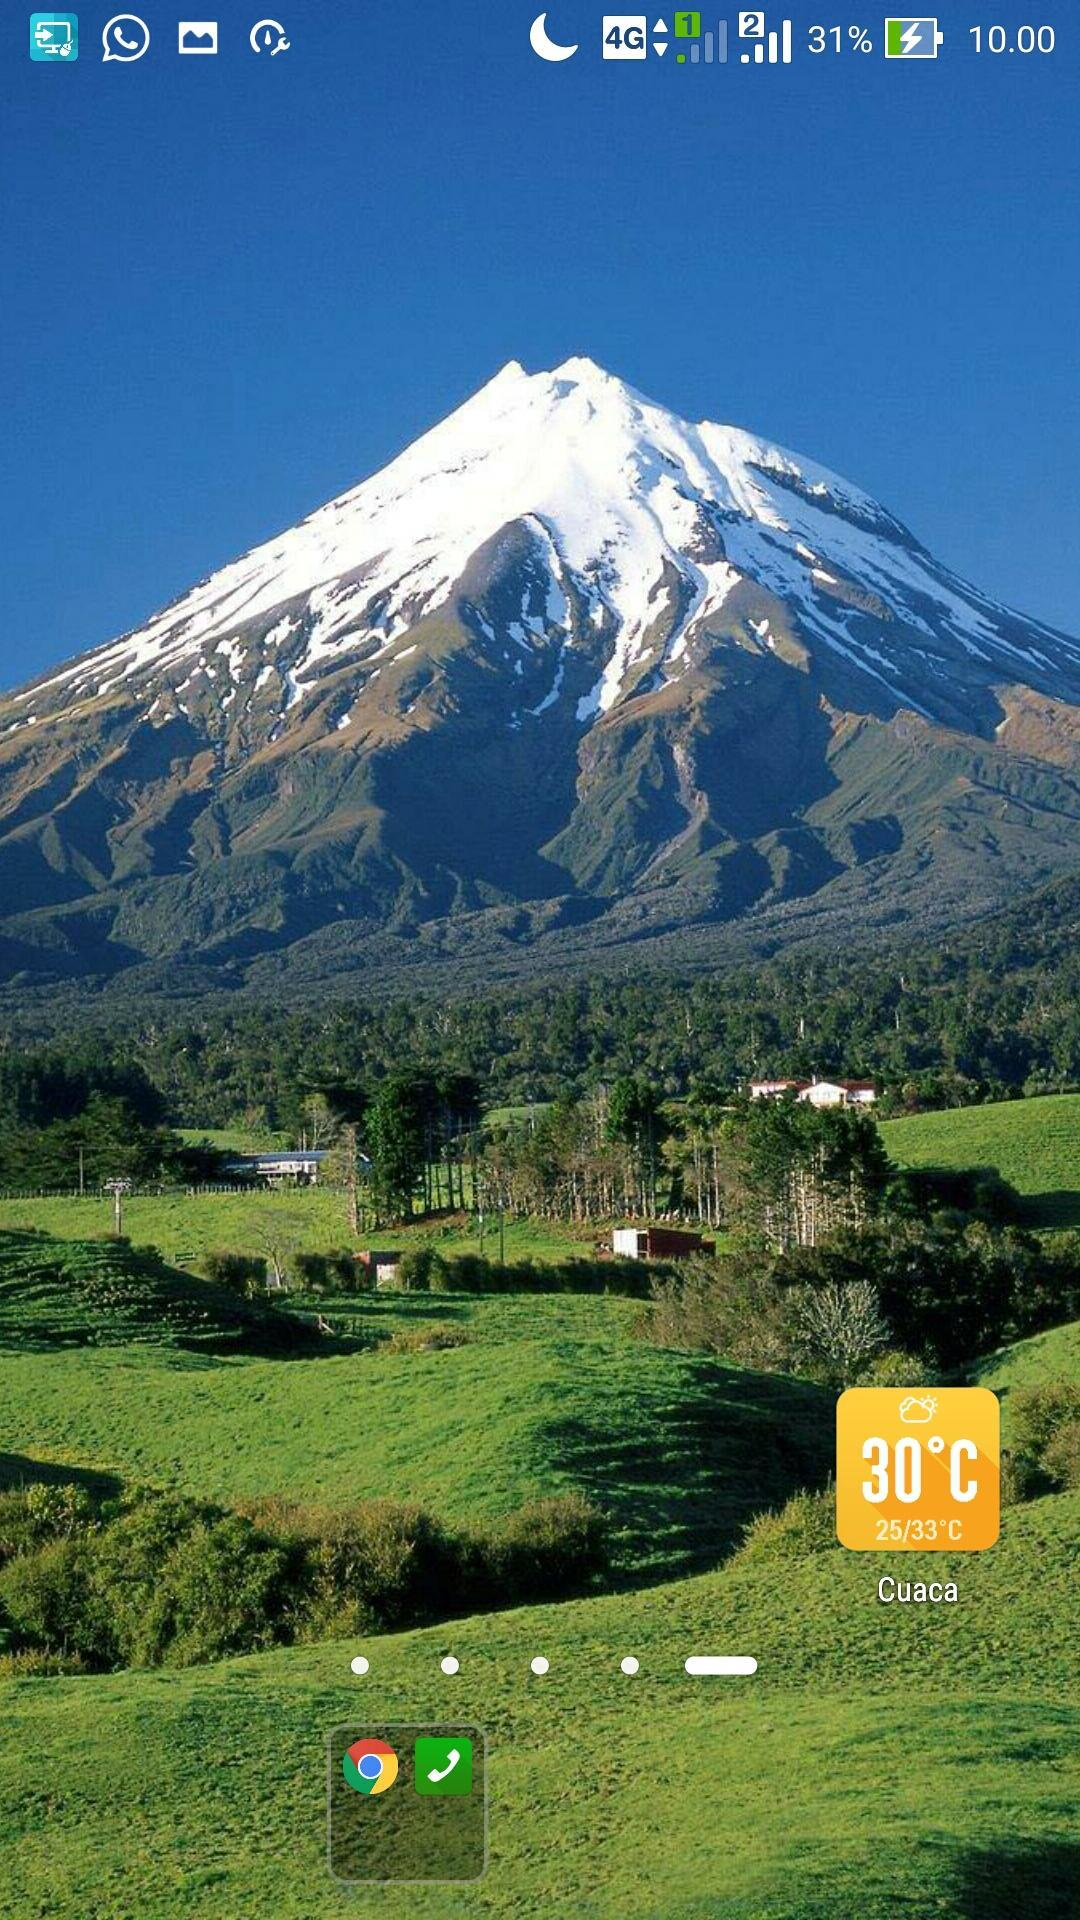 Mountain Wallpaper Hd Nature Volcano For Android Apk